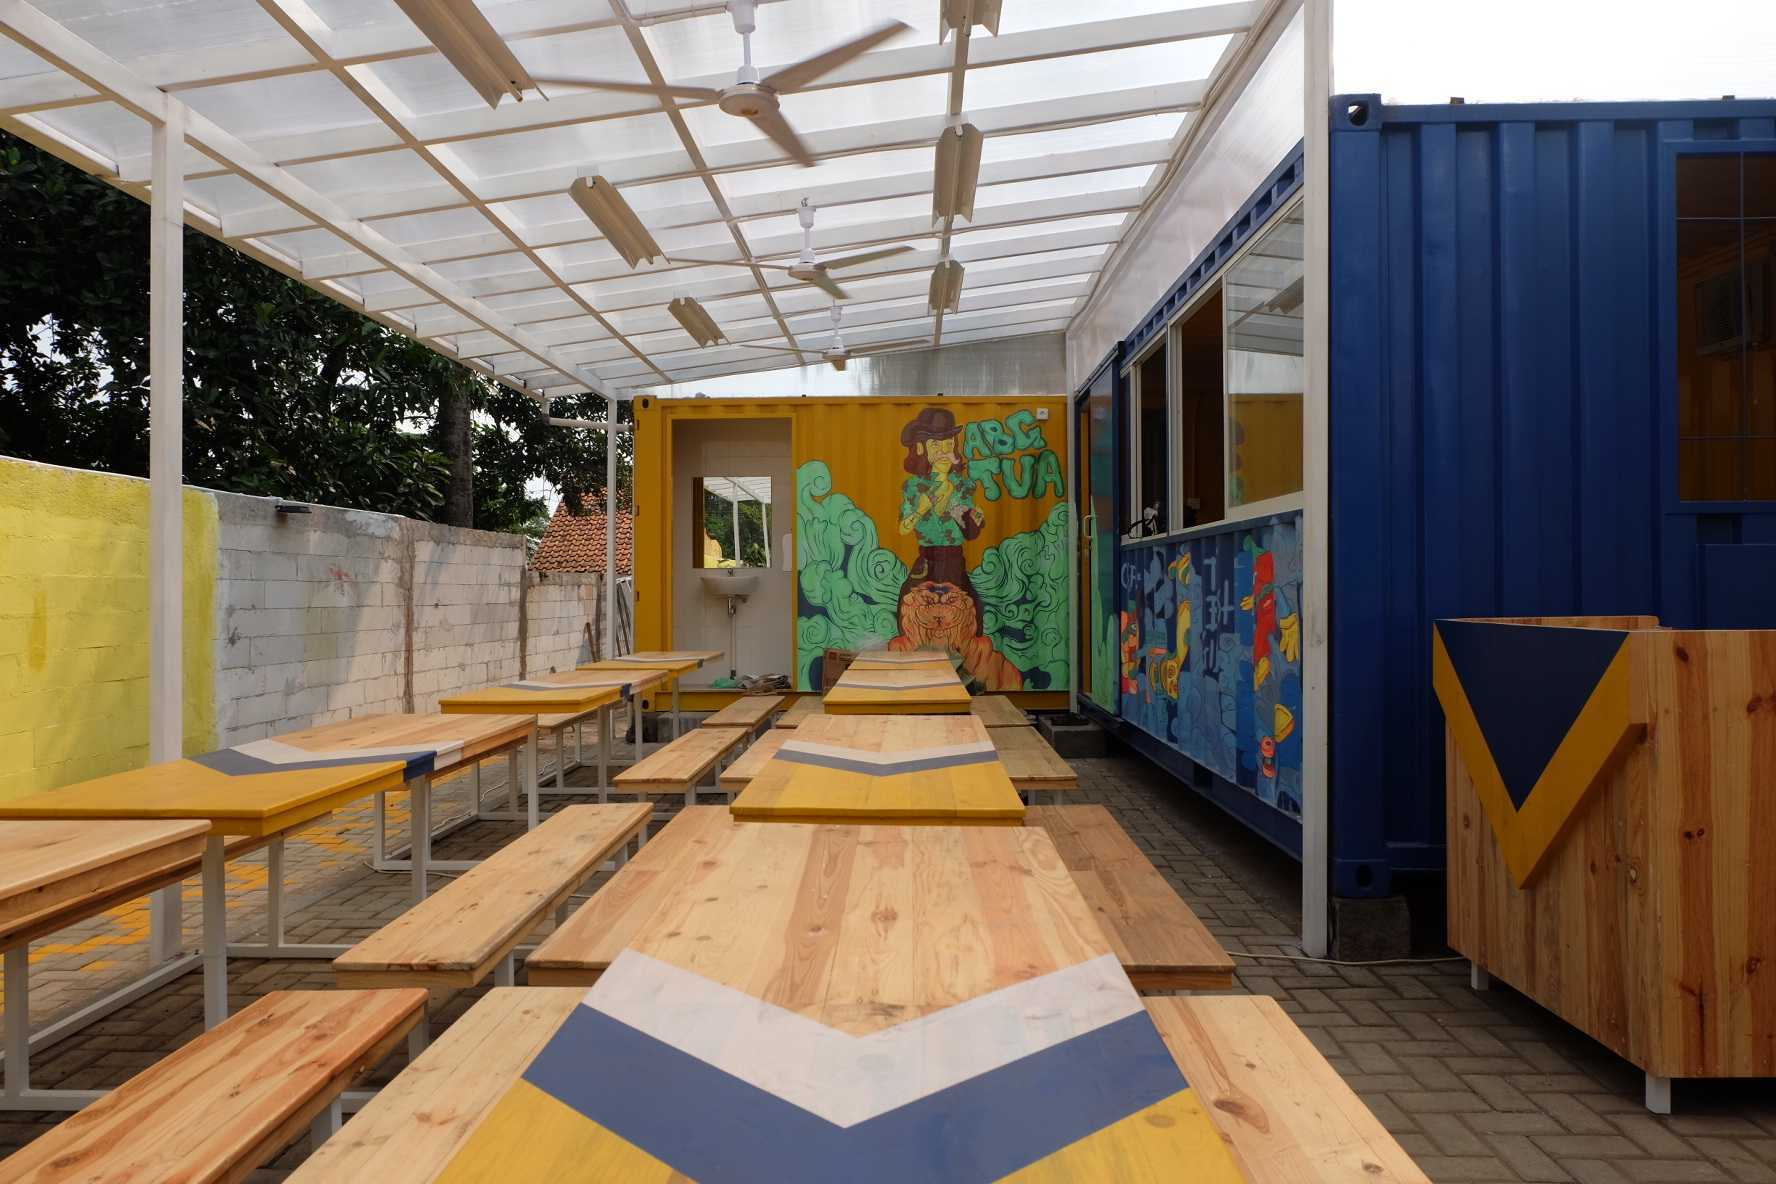 Desain Cafe Container Photo Seating Area Restaurant Warbox Container Cafe 6 Desain